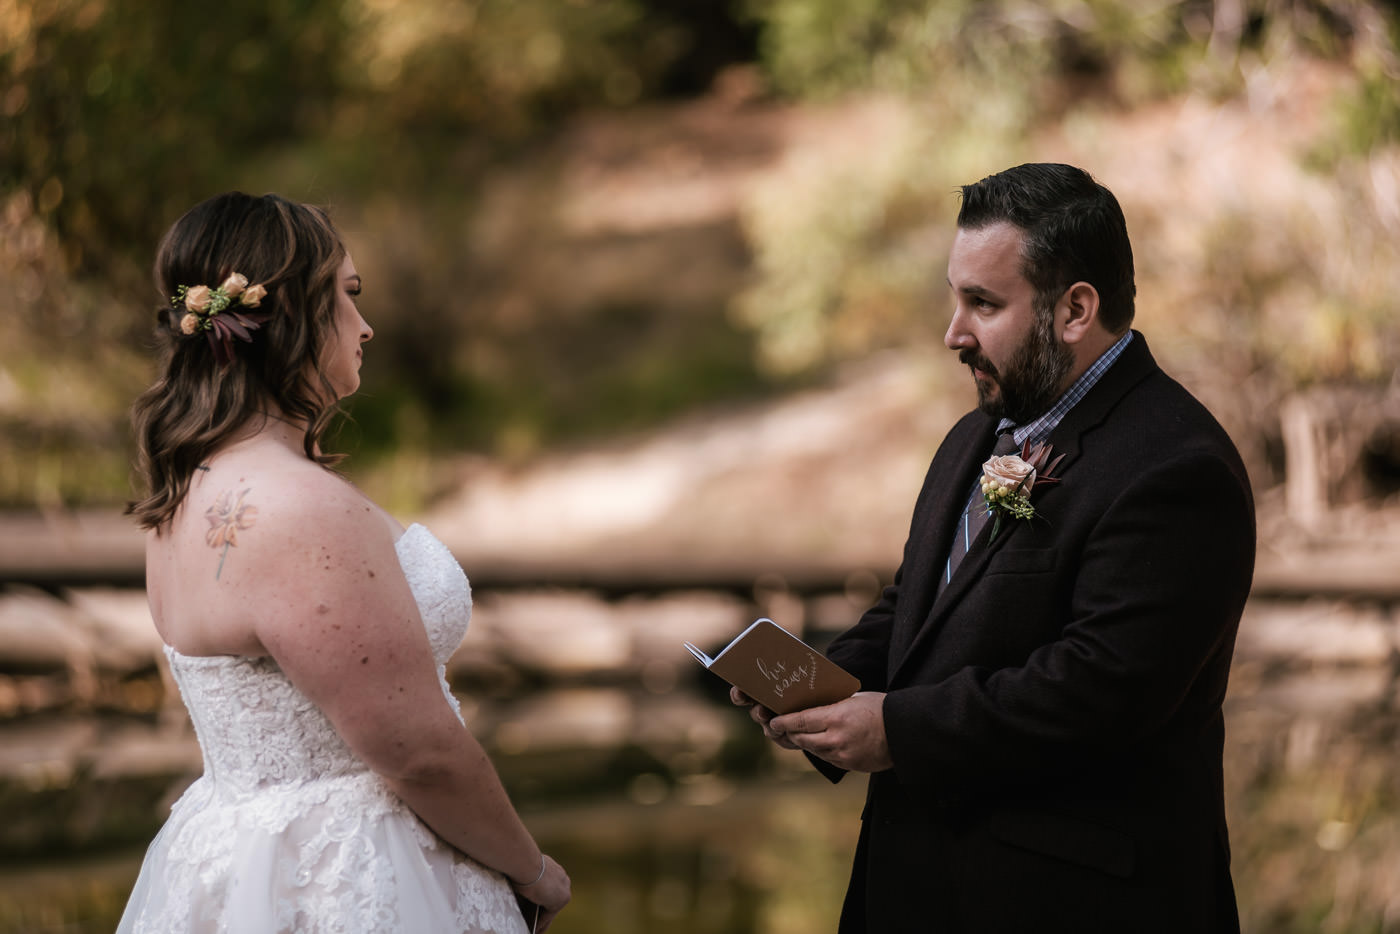 cathedral-beach-elopement-ceremony-yosemite-11.jpg